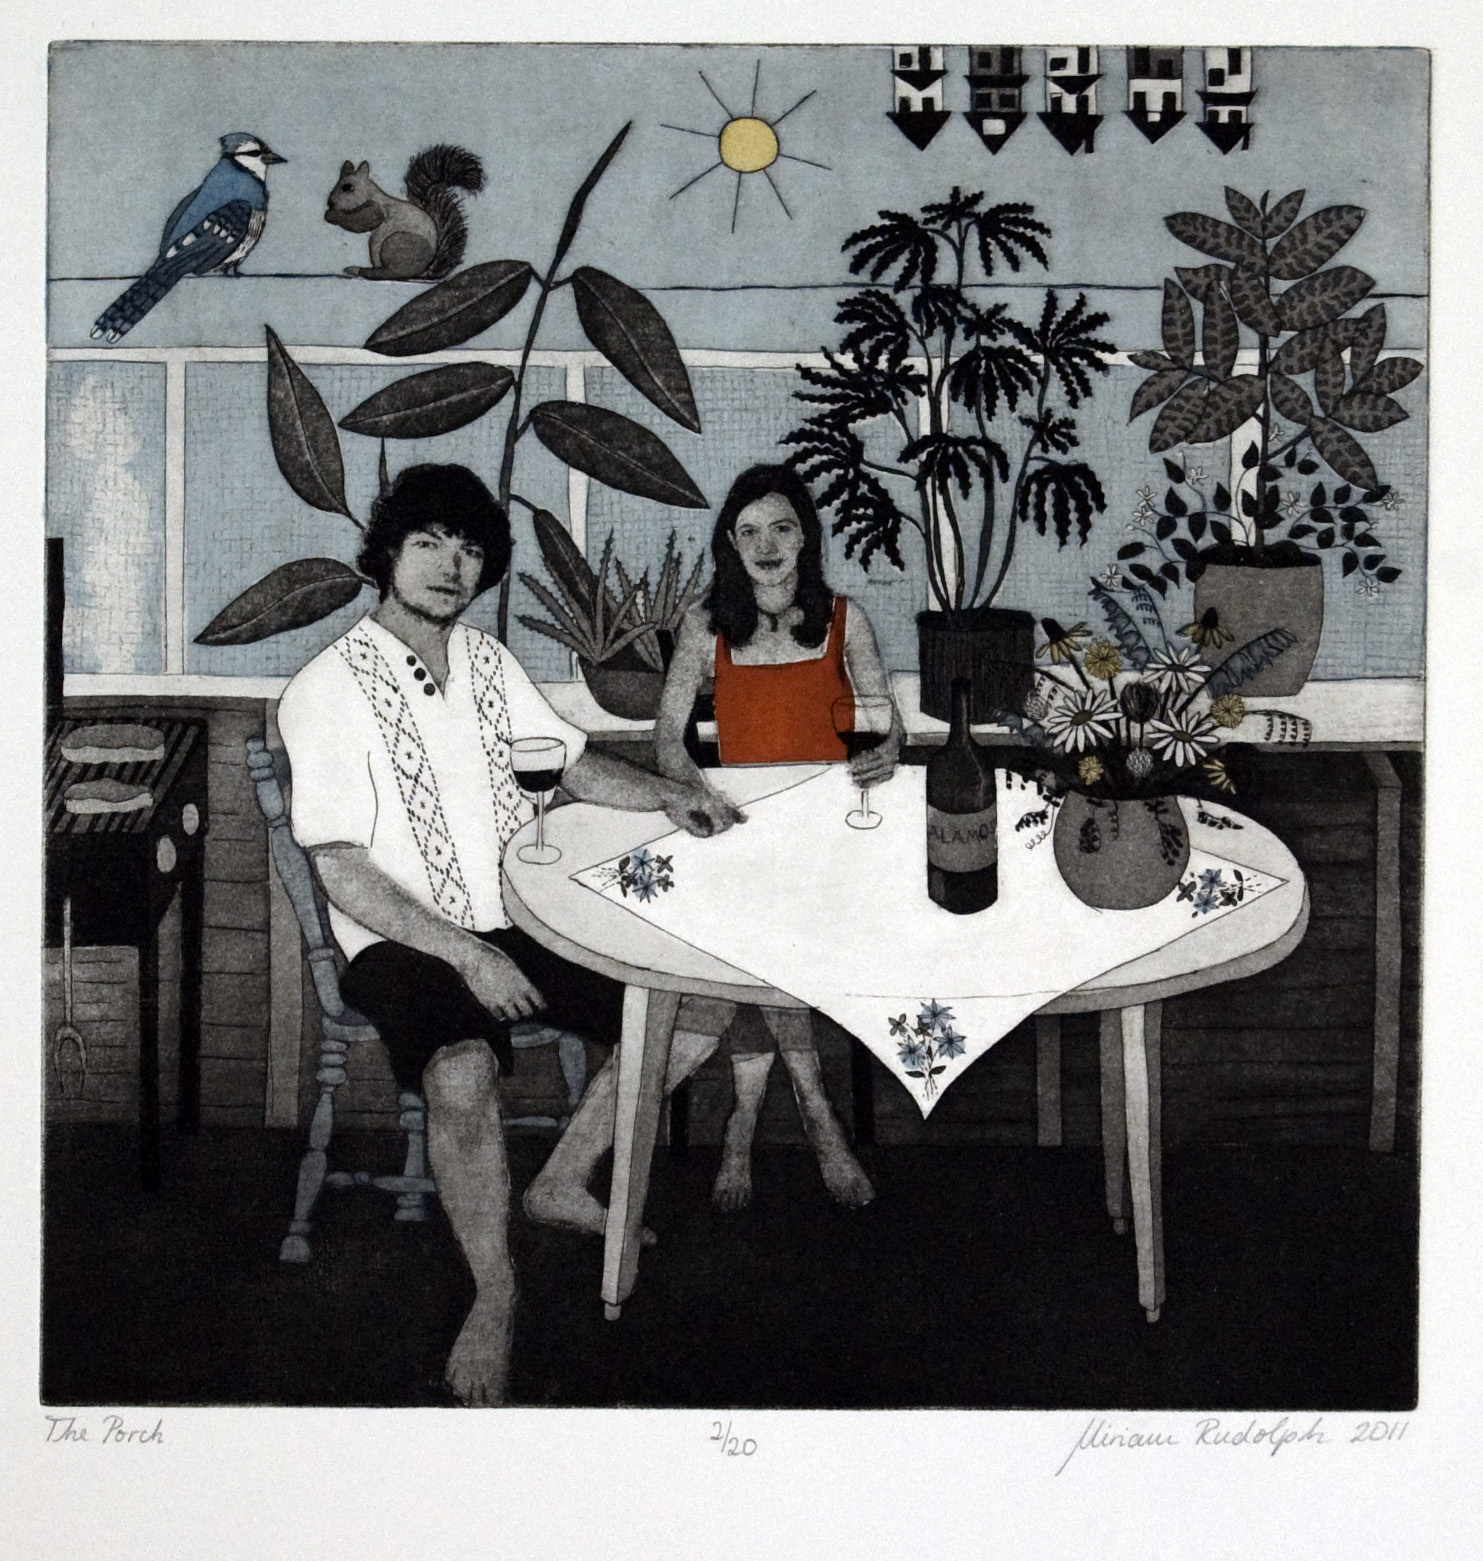 The Porch, Etching chine-colle screenprint hand coloured printed on pescia magnani paper, 30cmx 30cm